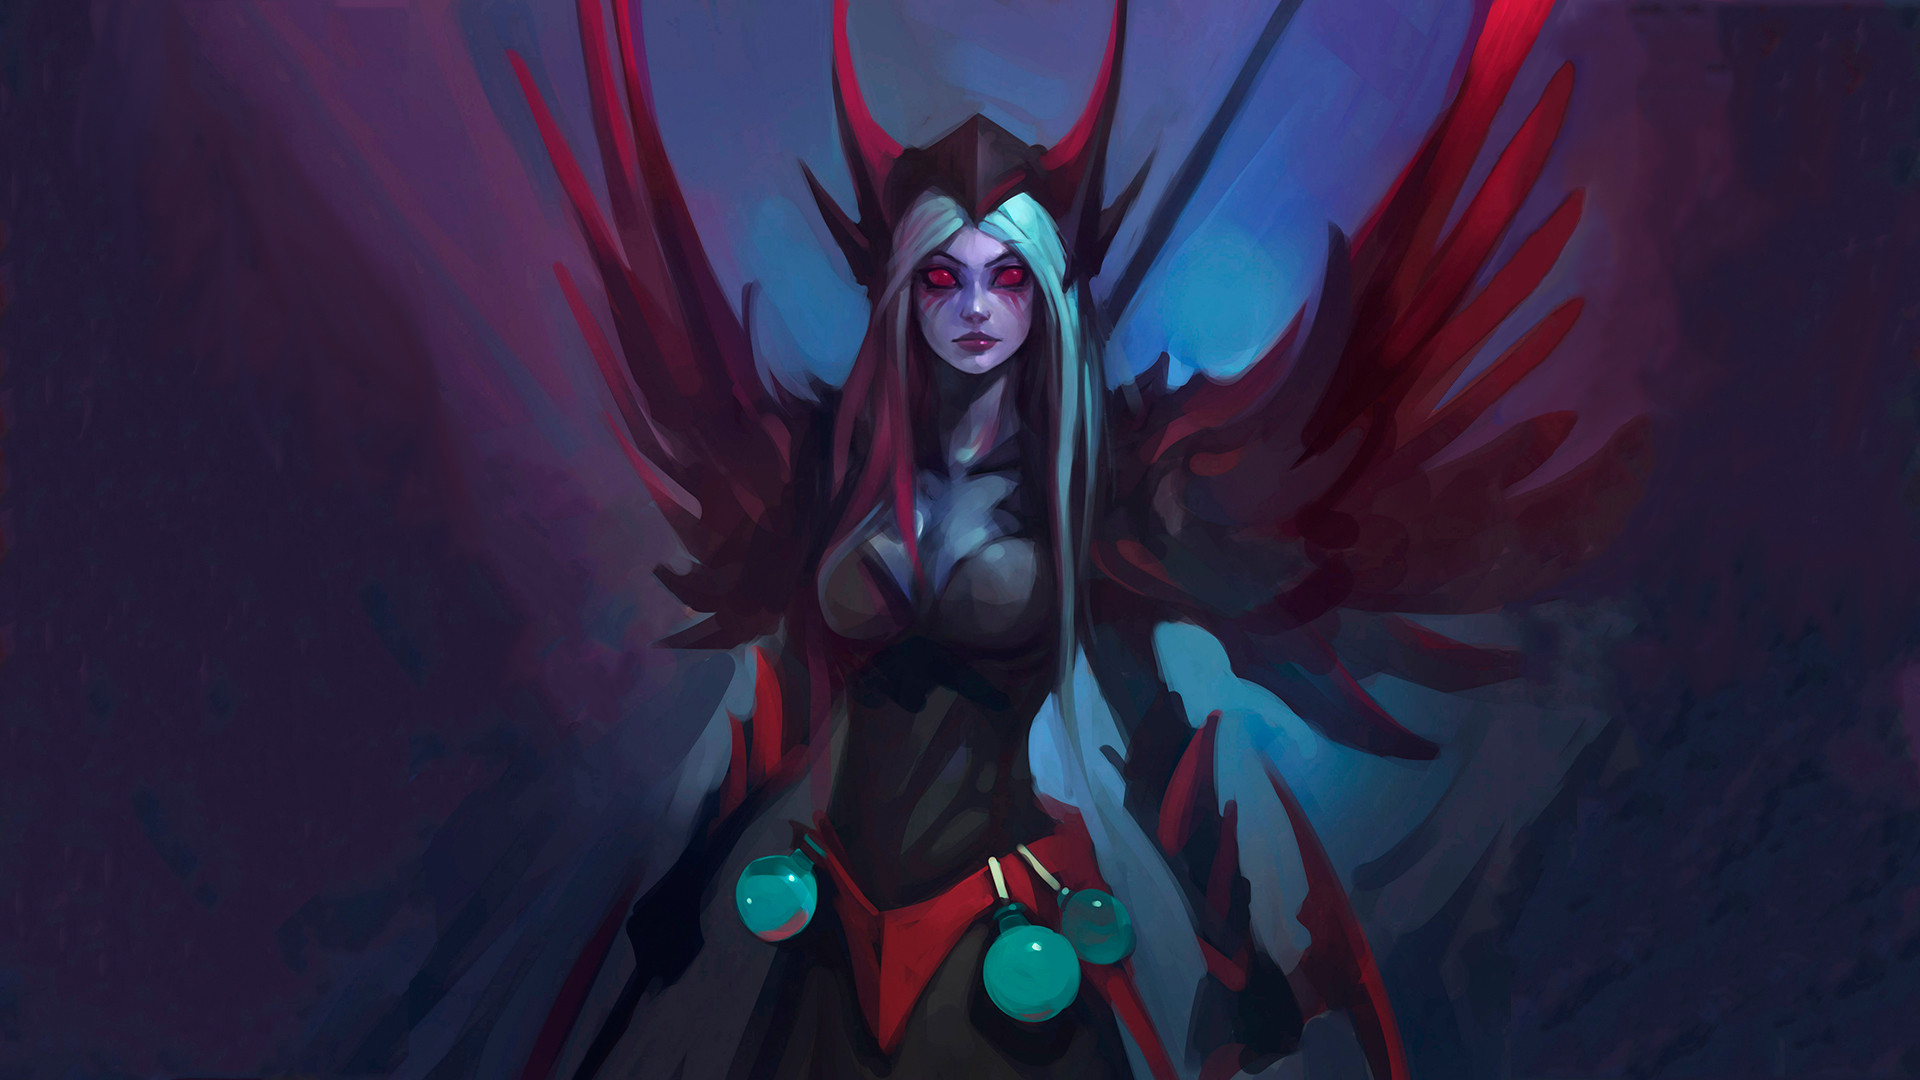 3d Animation Desktop Wallpapers Free Download Vengeful Spirit Wallpapers Download Wallpapers Dota 2